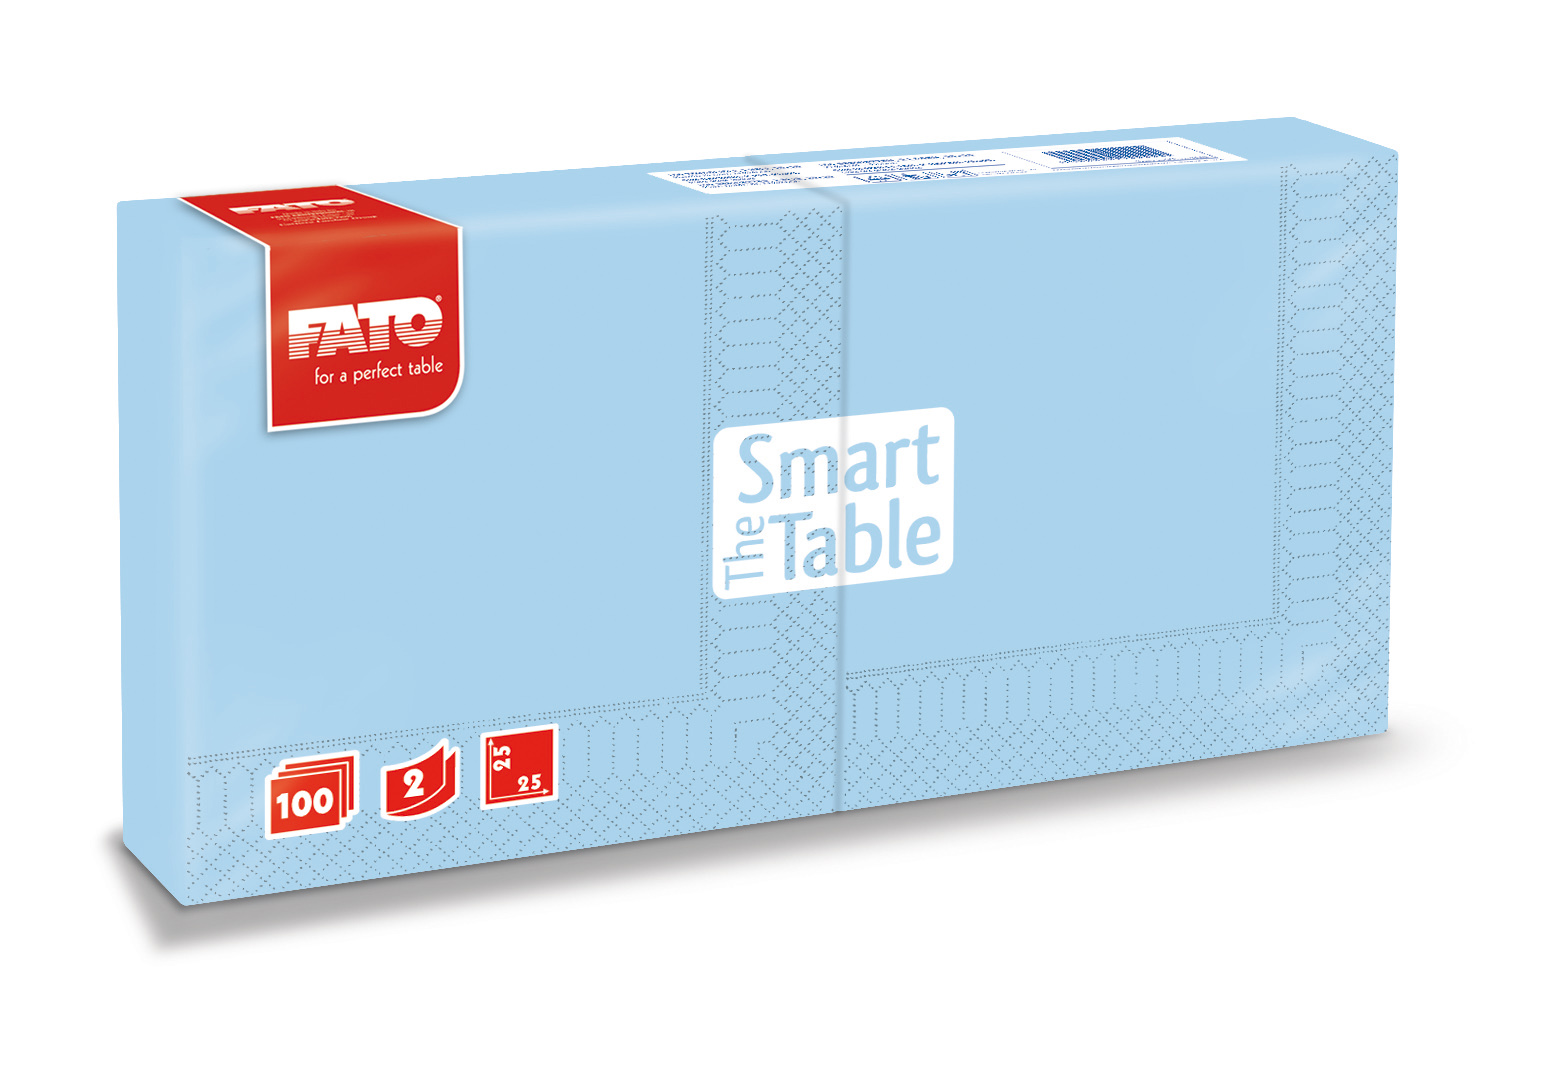 Ubrousky The Smart Table, 25x25cm, 2vr., Azurové - 3800 ks